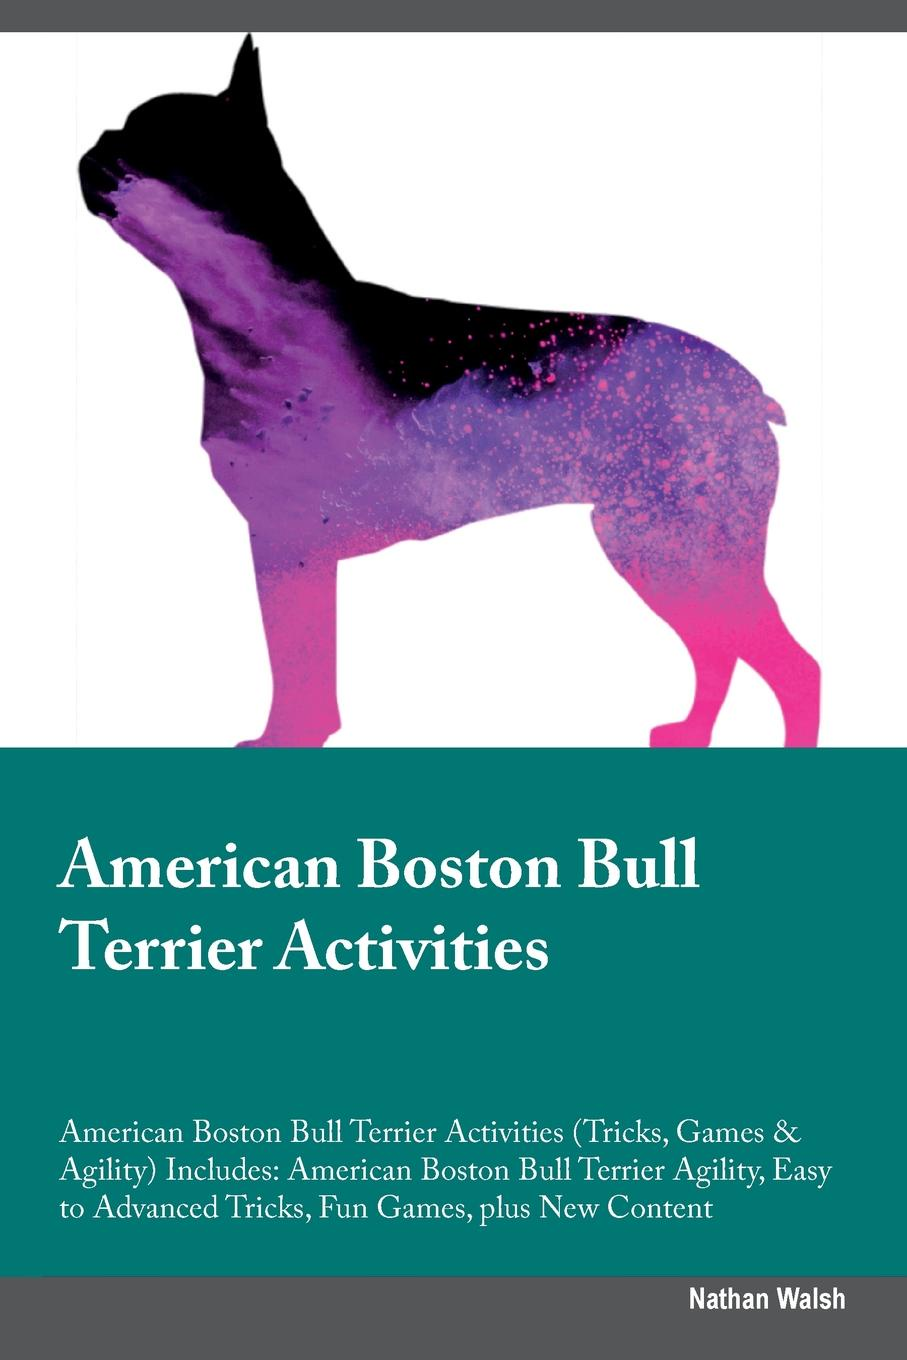 Nathan Walsh American Boston Bull Terrier Activities American Boston Bull Terrier Activities (Tricks, Games & Agility) Includes. American Boston Bull Terrier Agility, Easy to Advanced Tricks, Fun Games, plus New Content